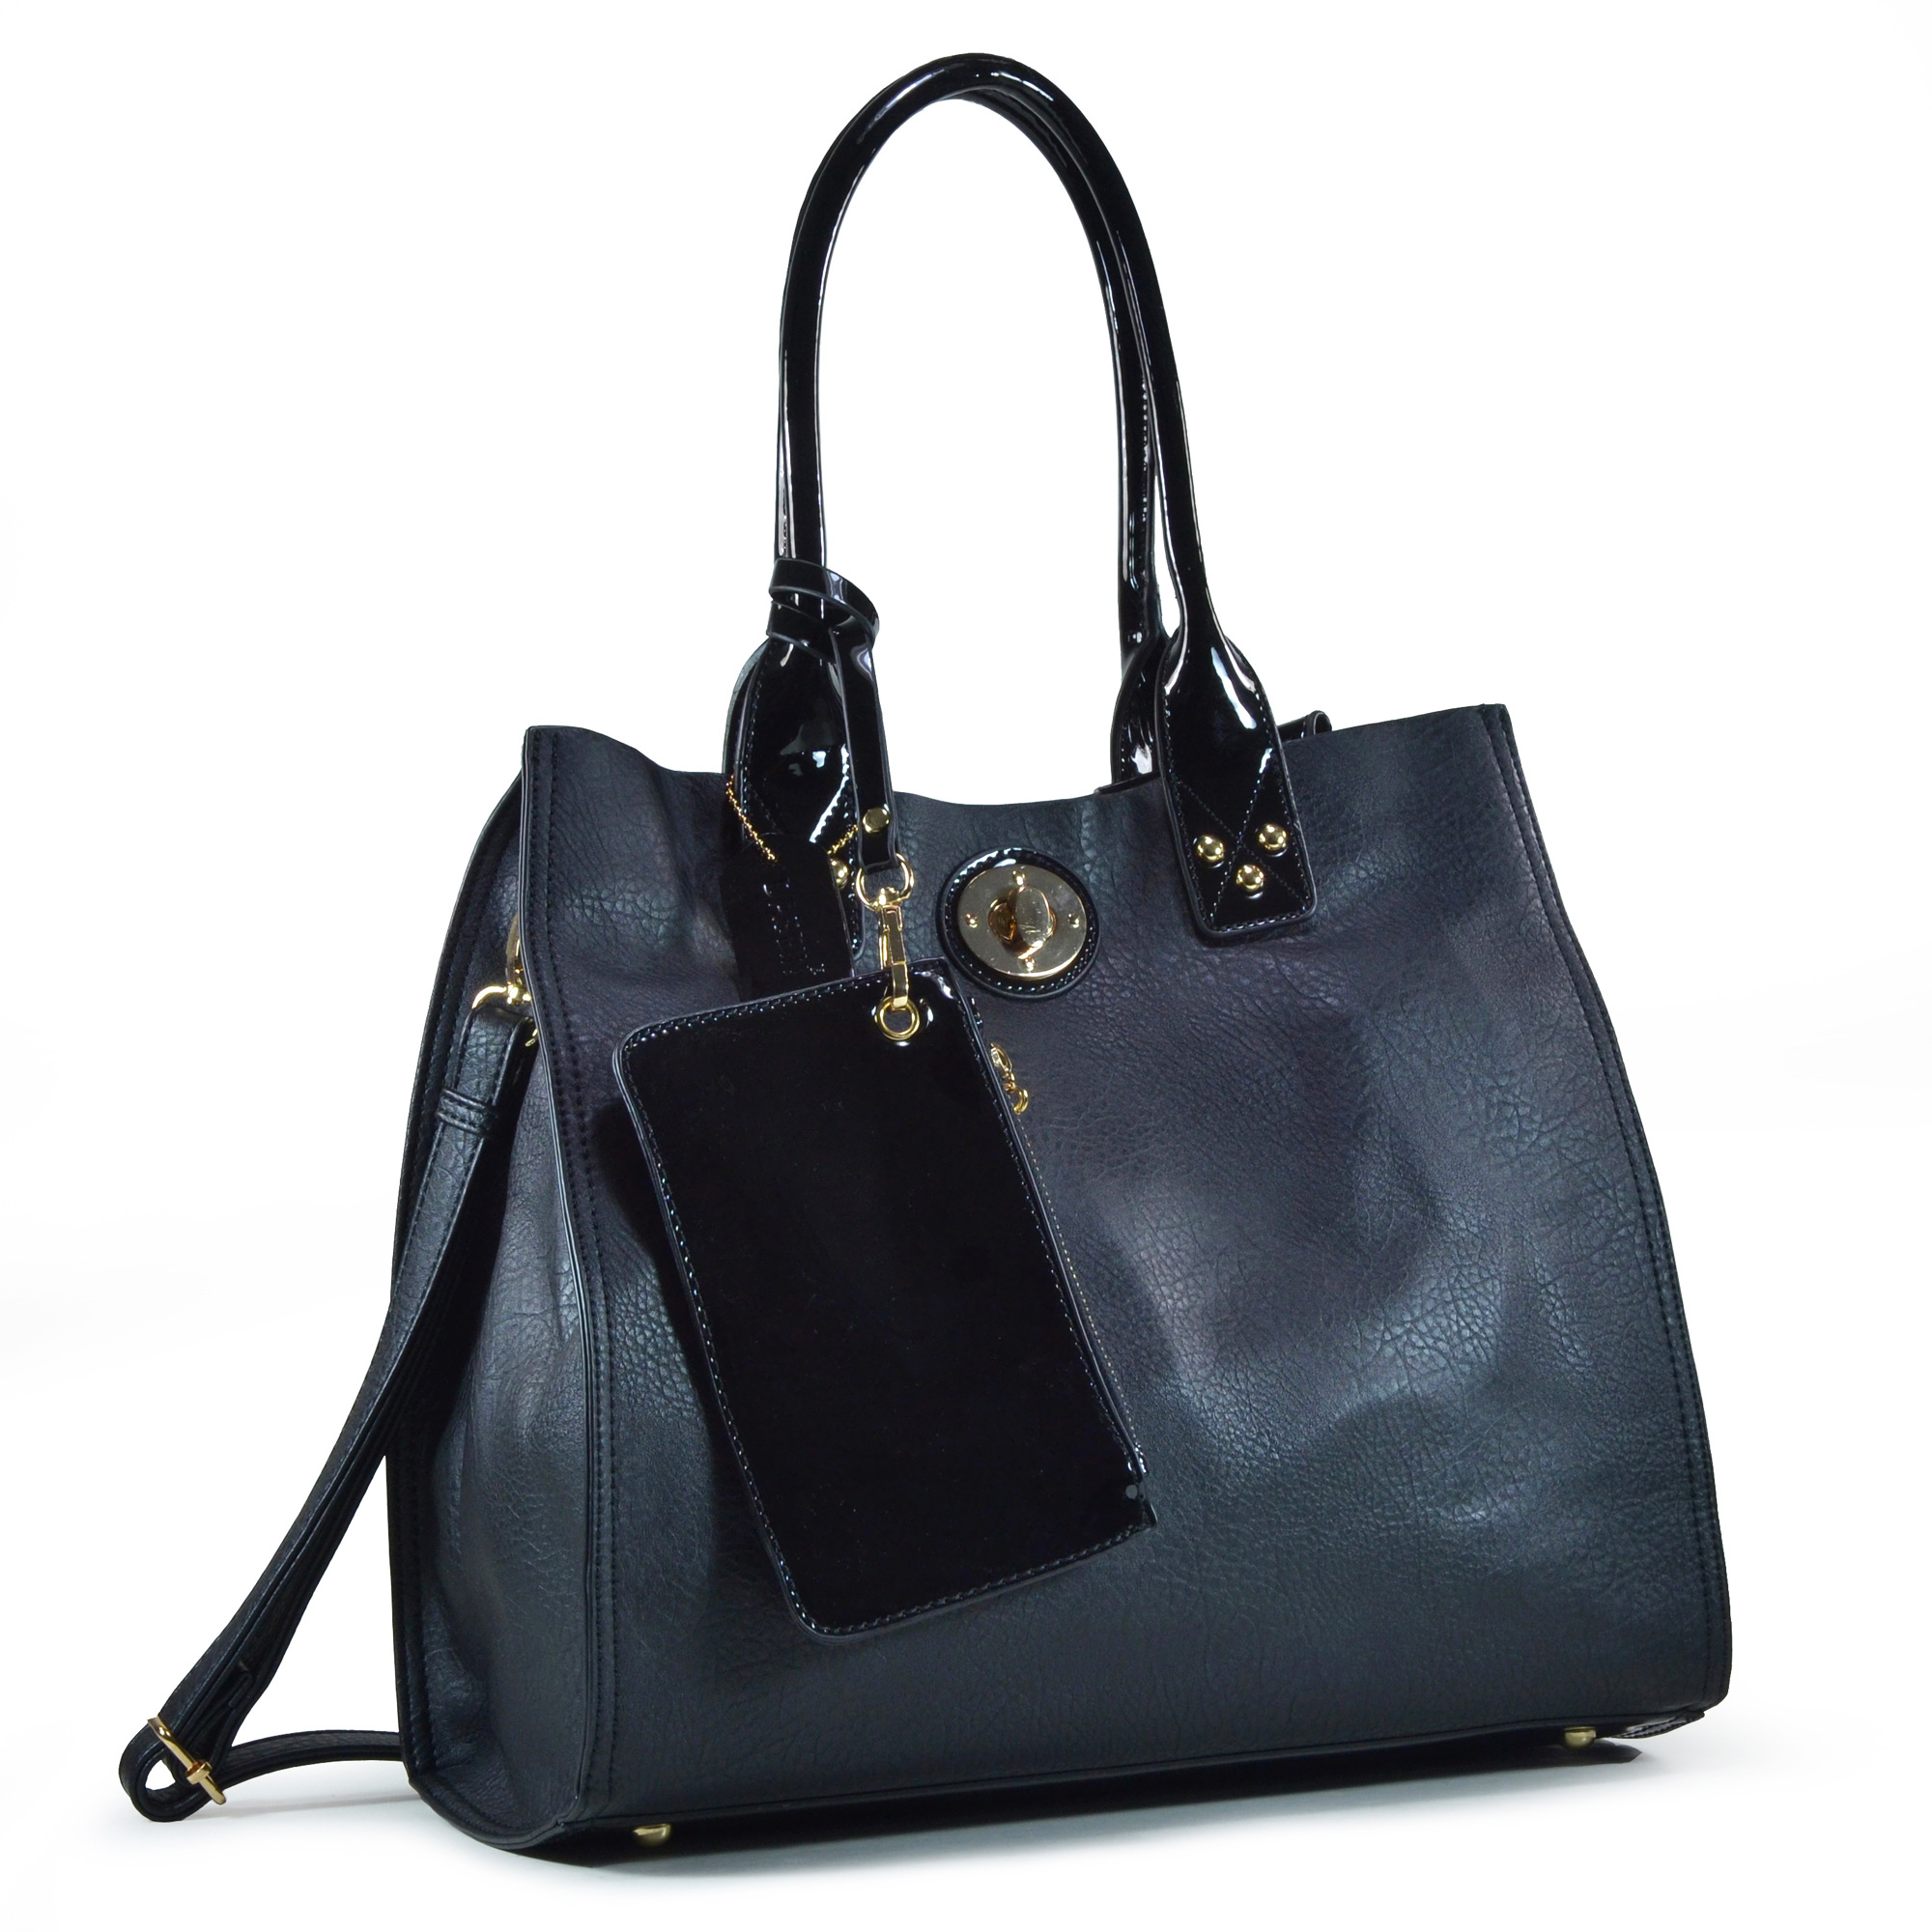 Dasein® 2-in-1 Satchel Bag with Patent Leather Trim